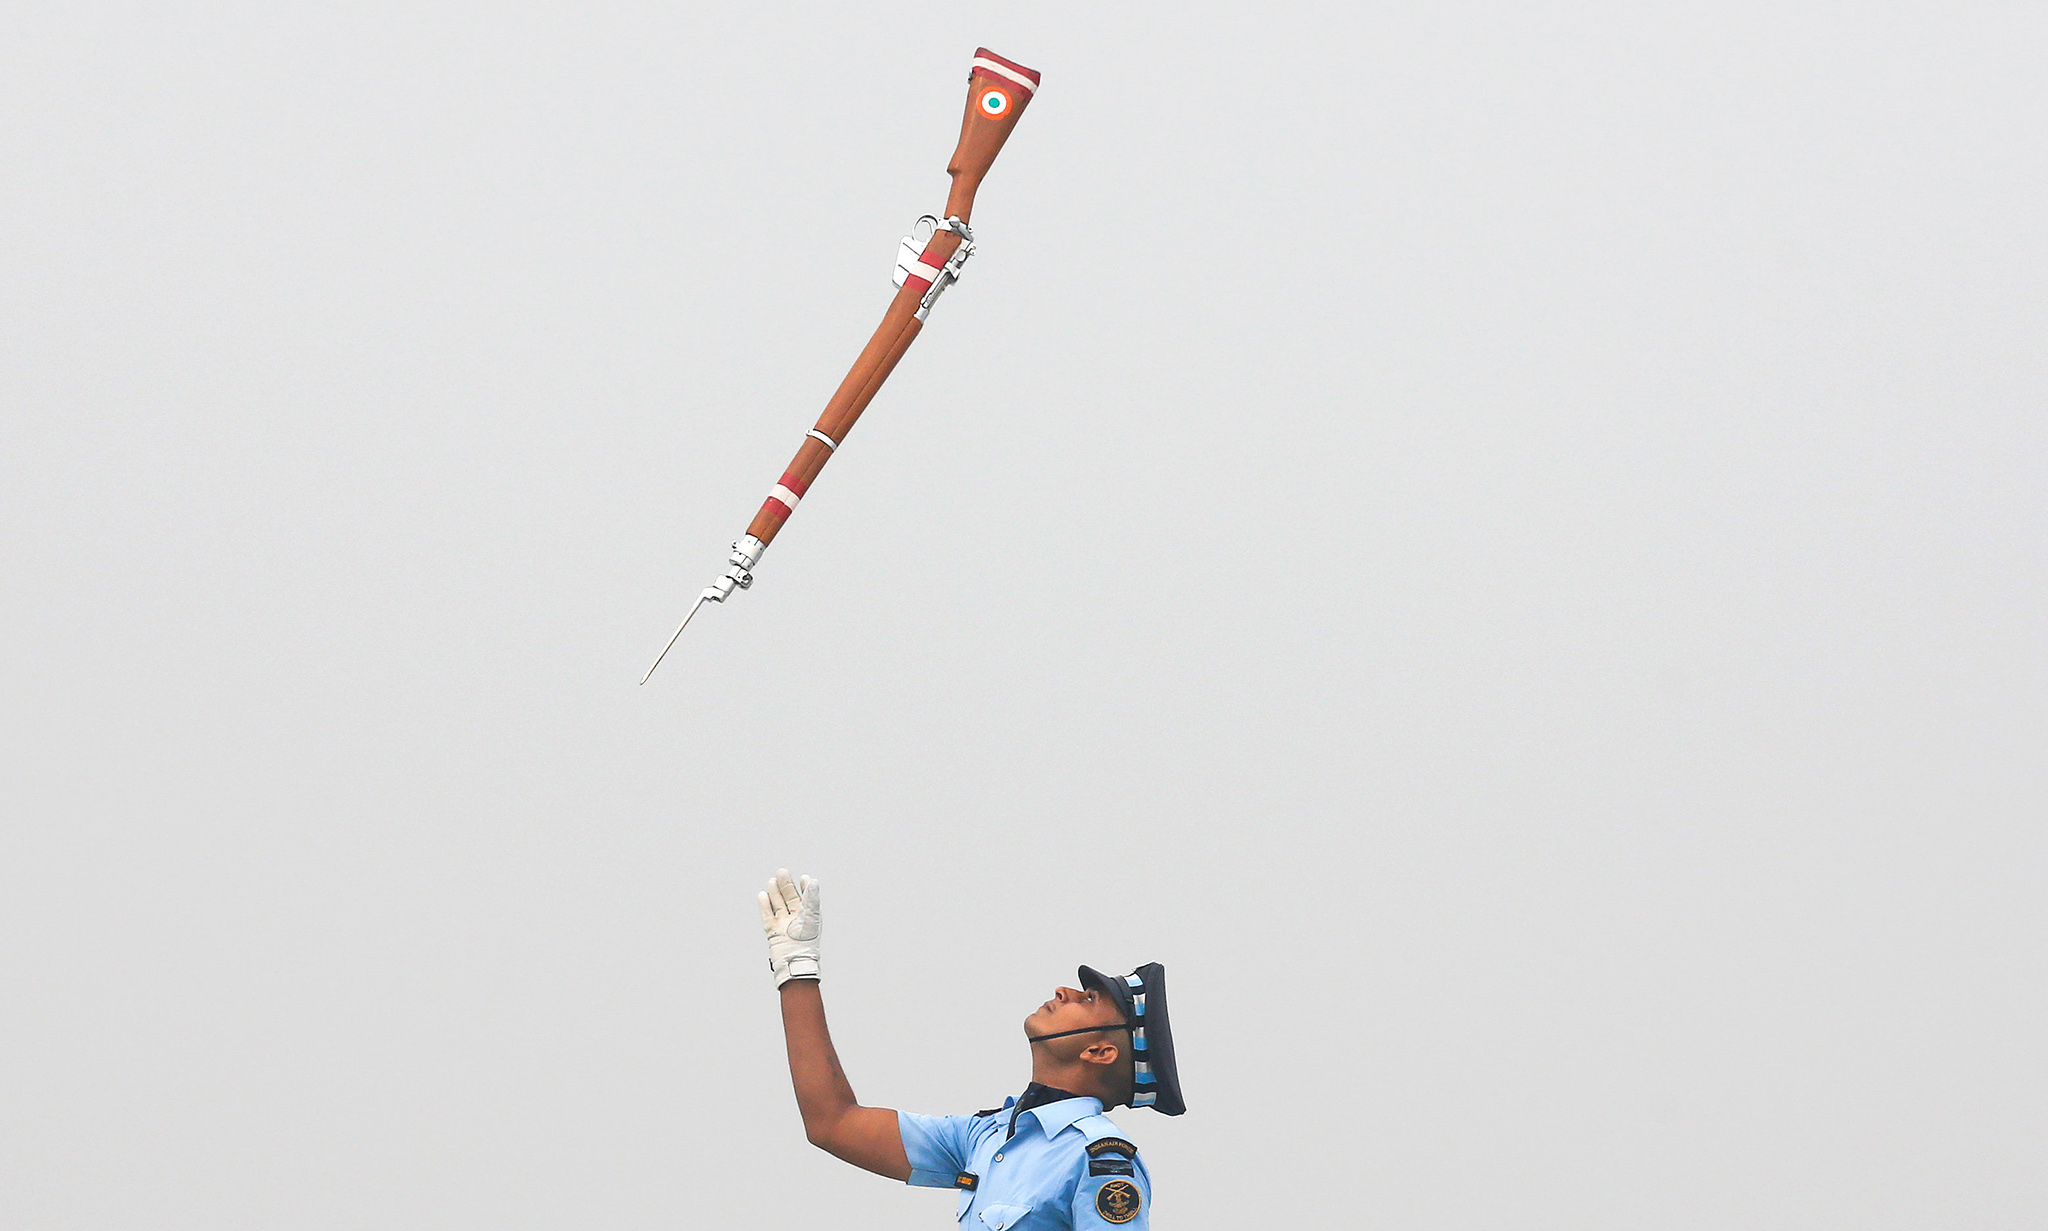 An Indian Air Force soldier tosses his rifle as he performs during the full-dress rehearsal for Indian Air Force Day at the Hindon air force station on the outskirts of New Delhi, India, October 6, 2016.